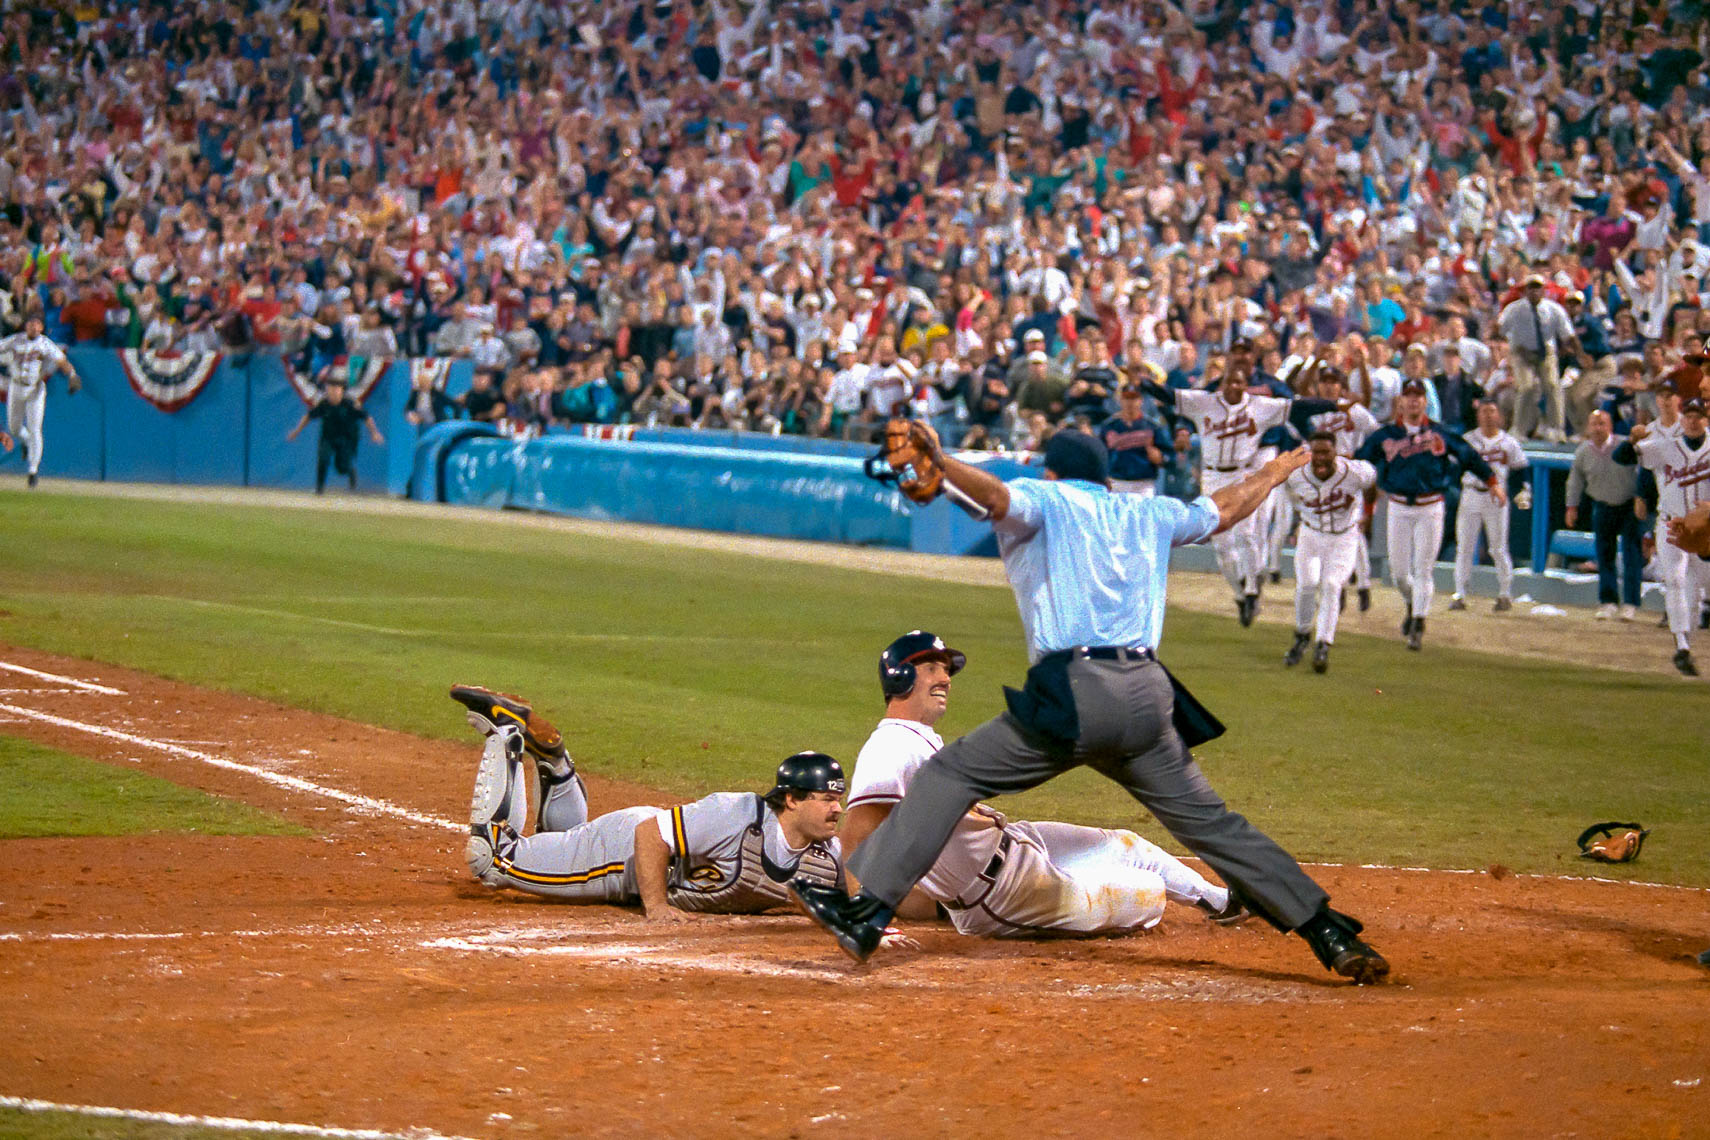 1992 Sid Bream Slide for the NLCS